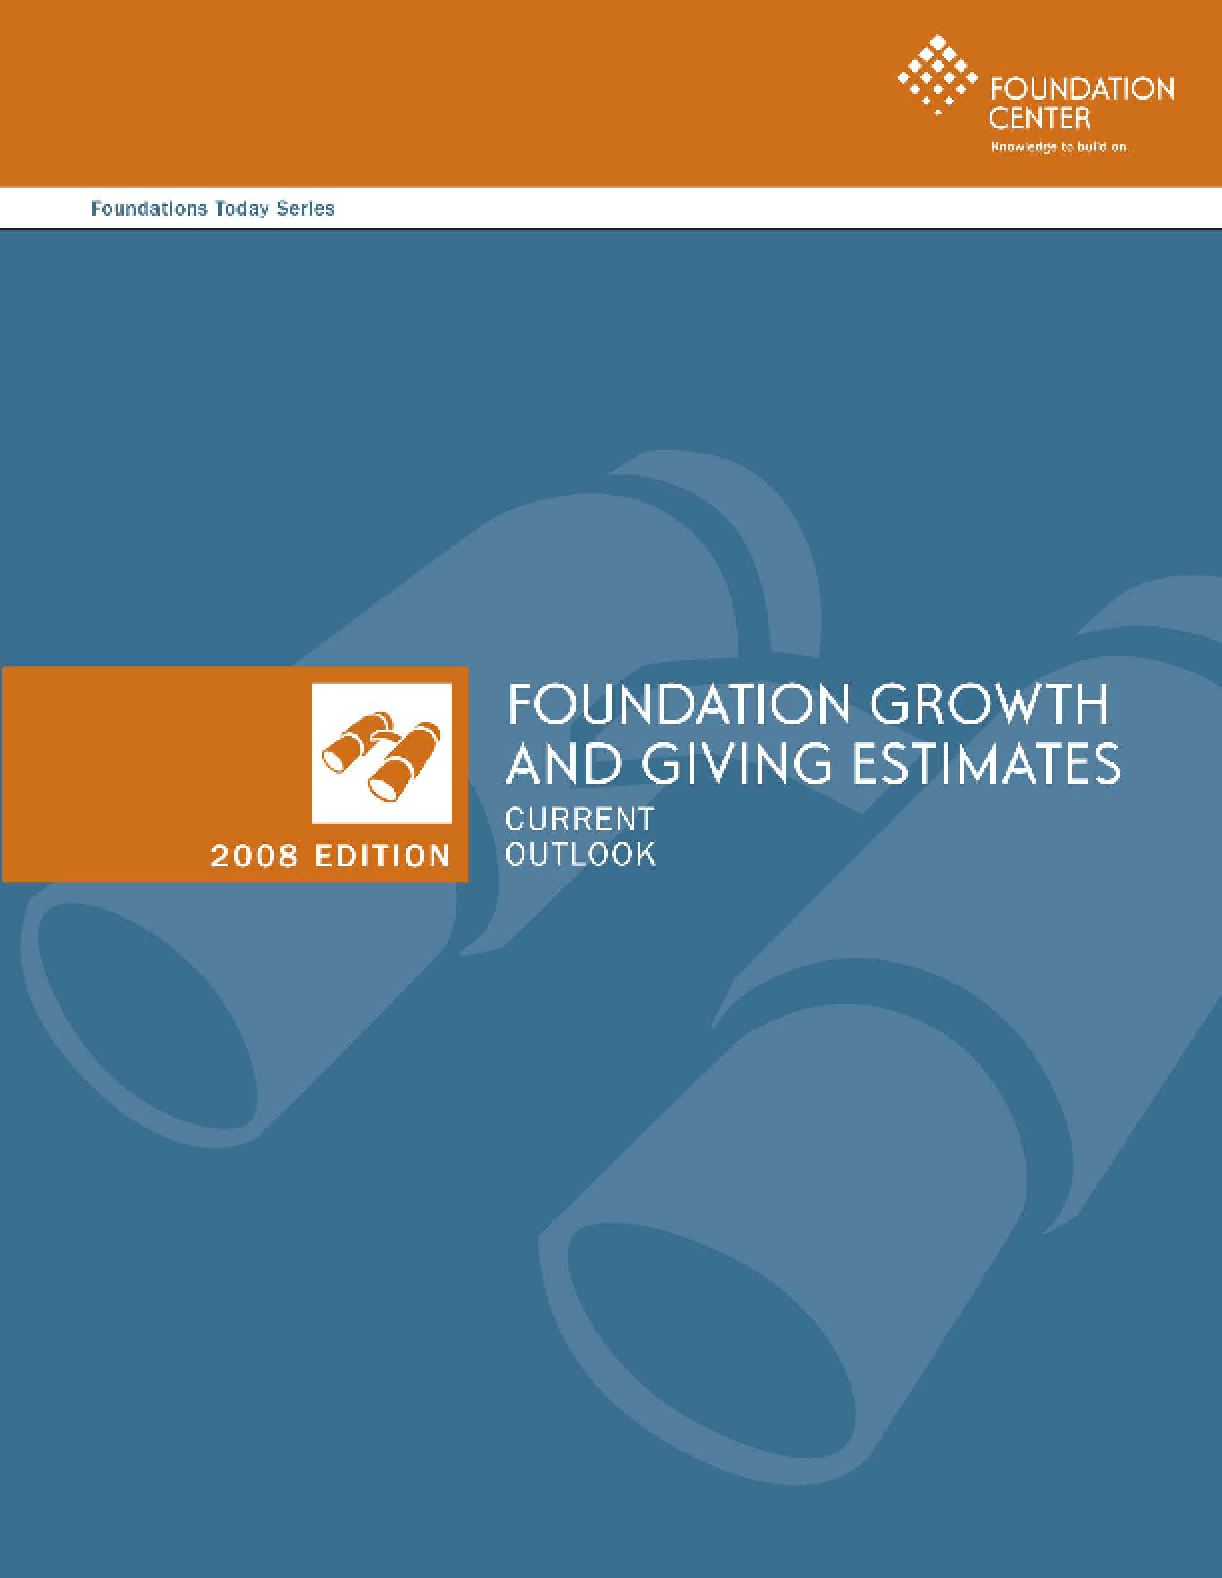 Foundations Today: Growth and Giving Estimates, 2008 edition